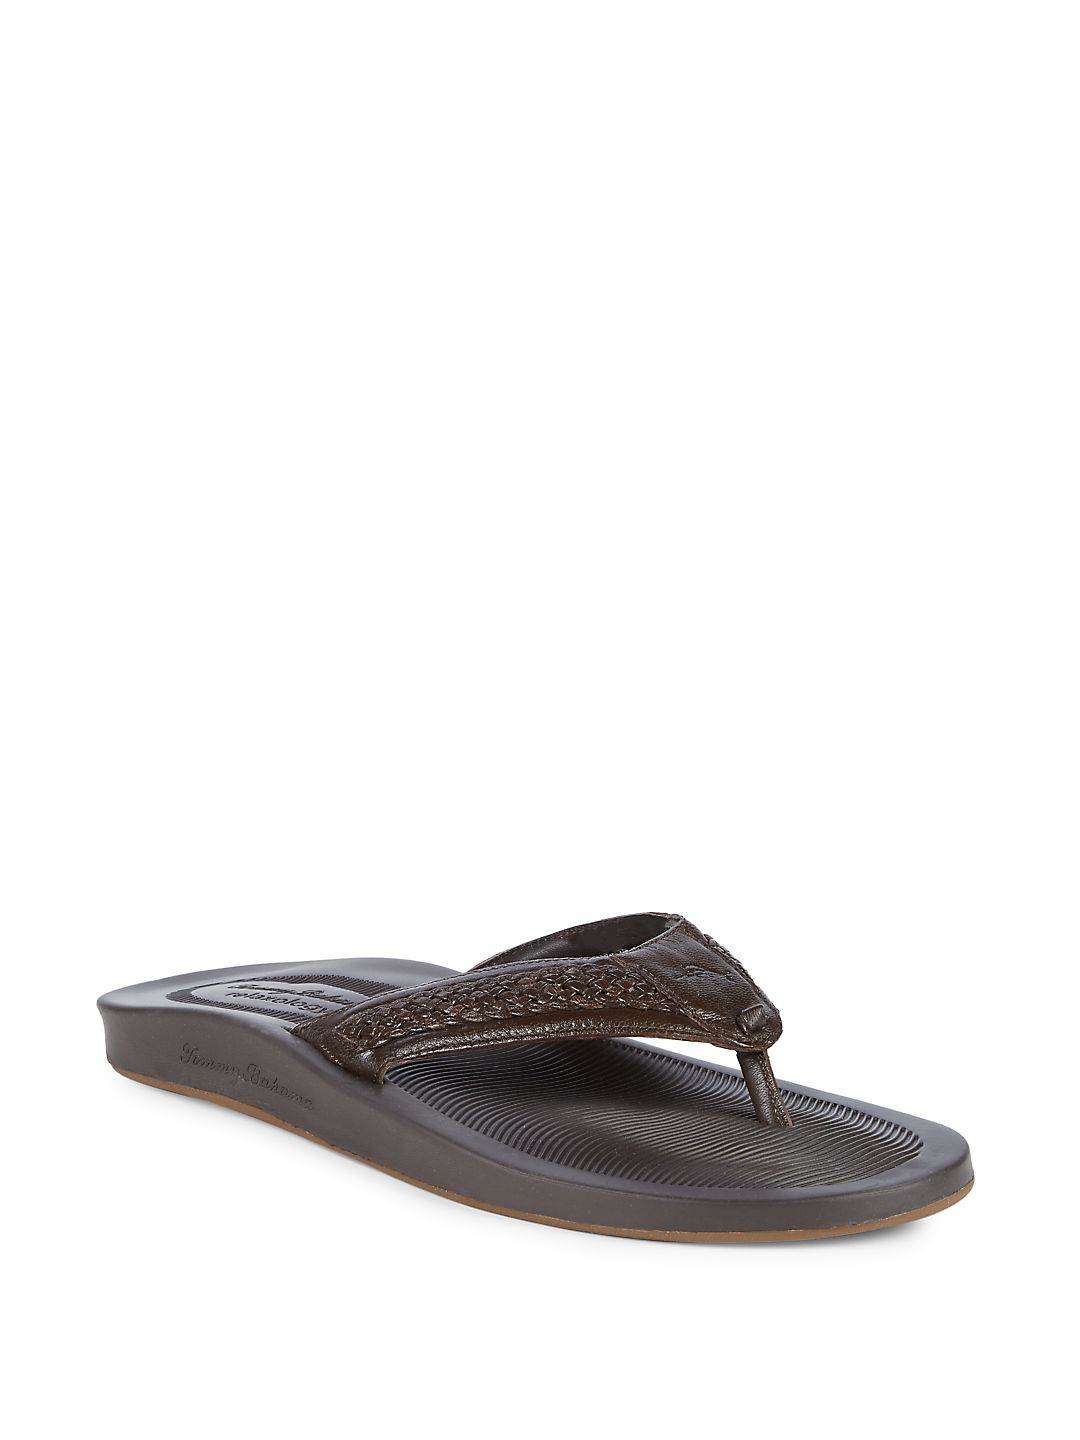 Shallow Leather Thong Sandals